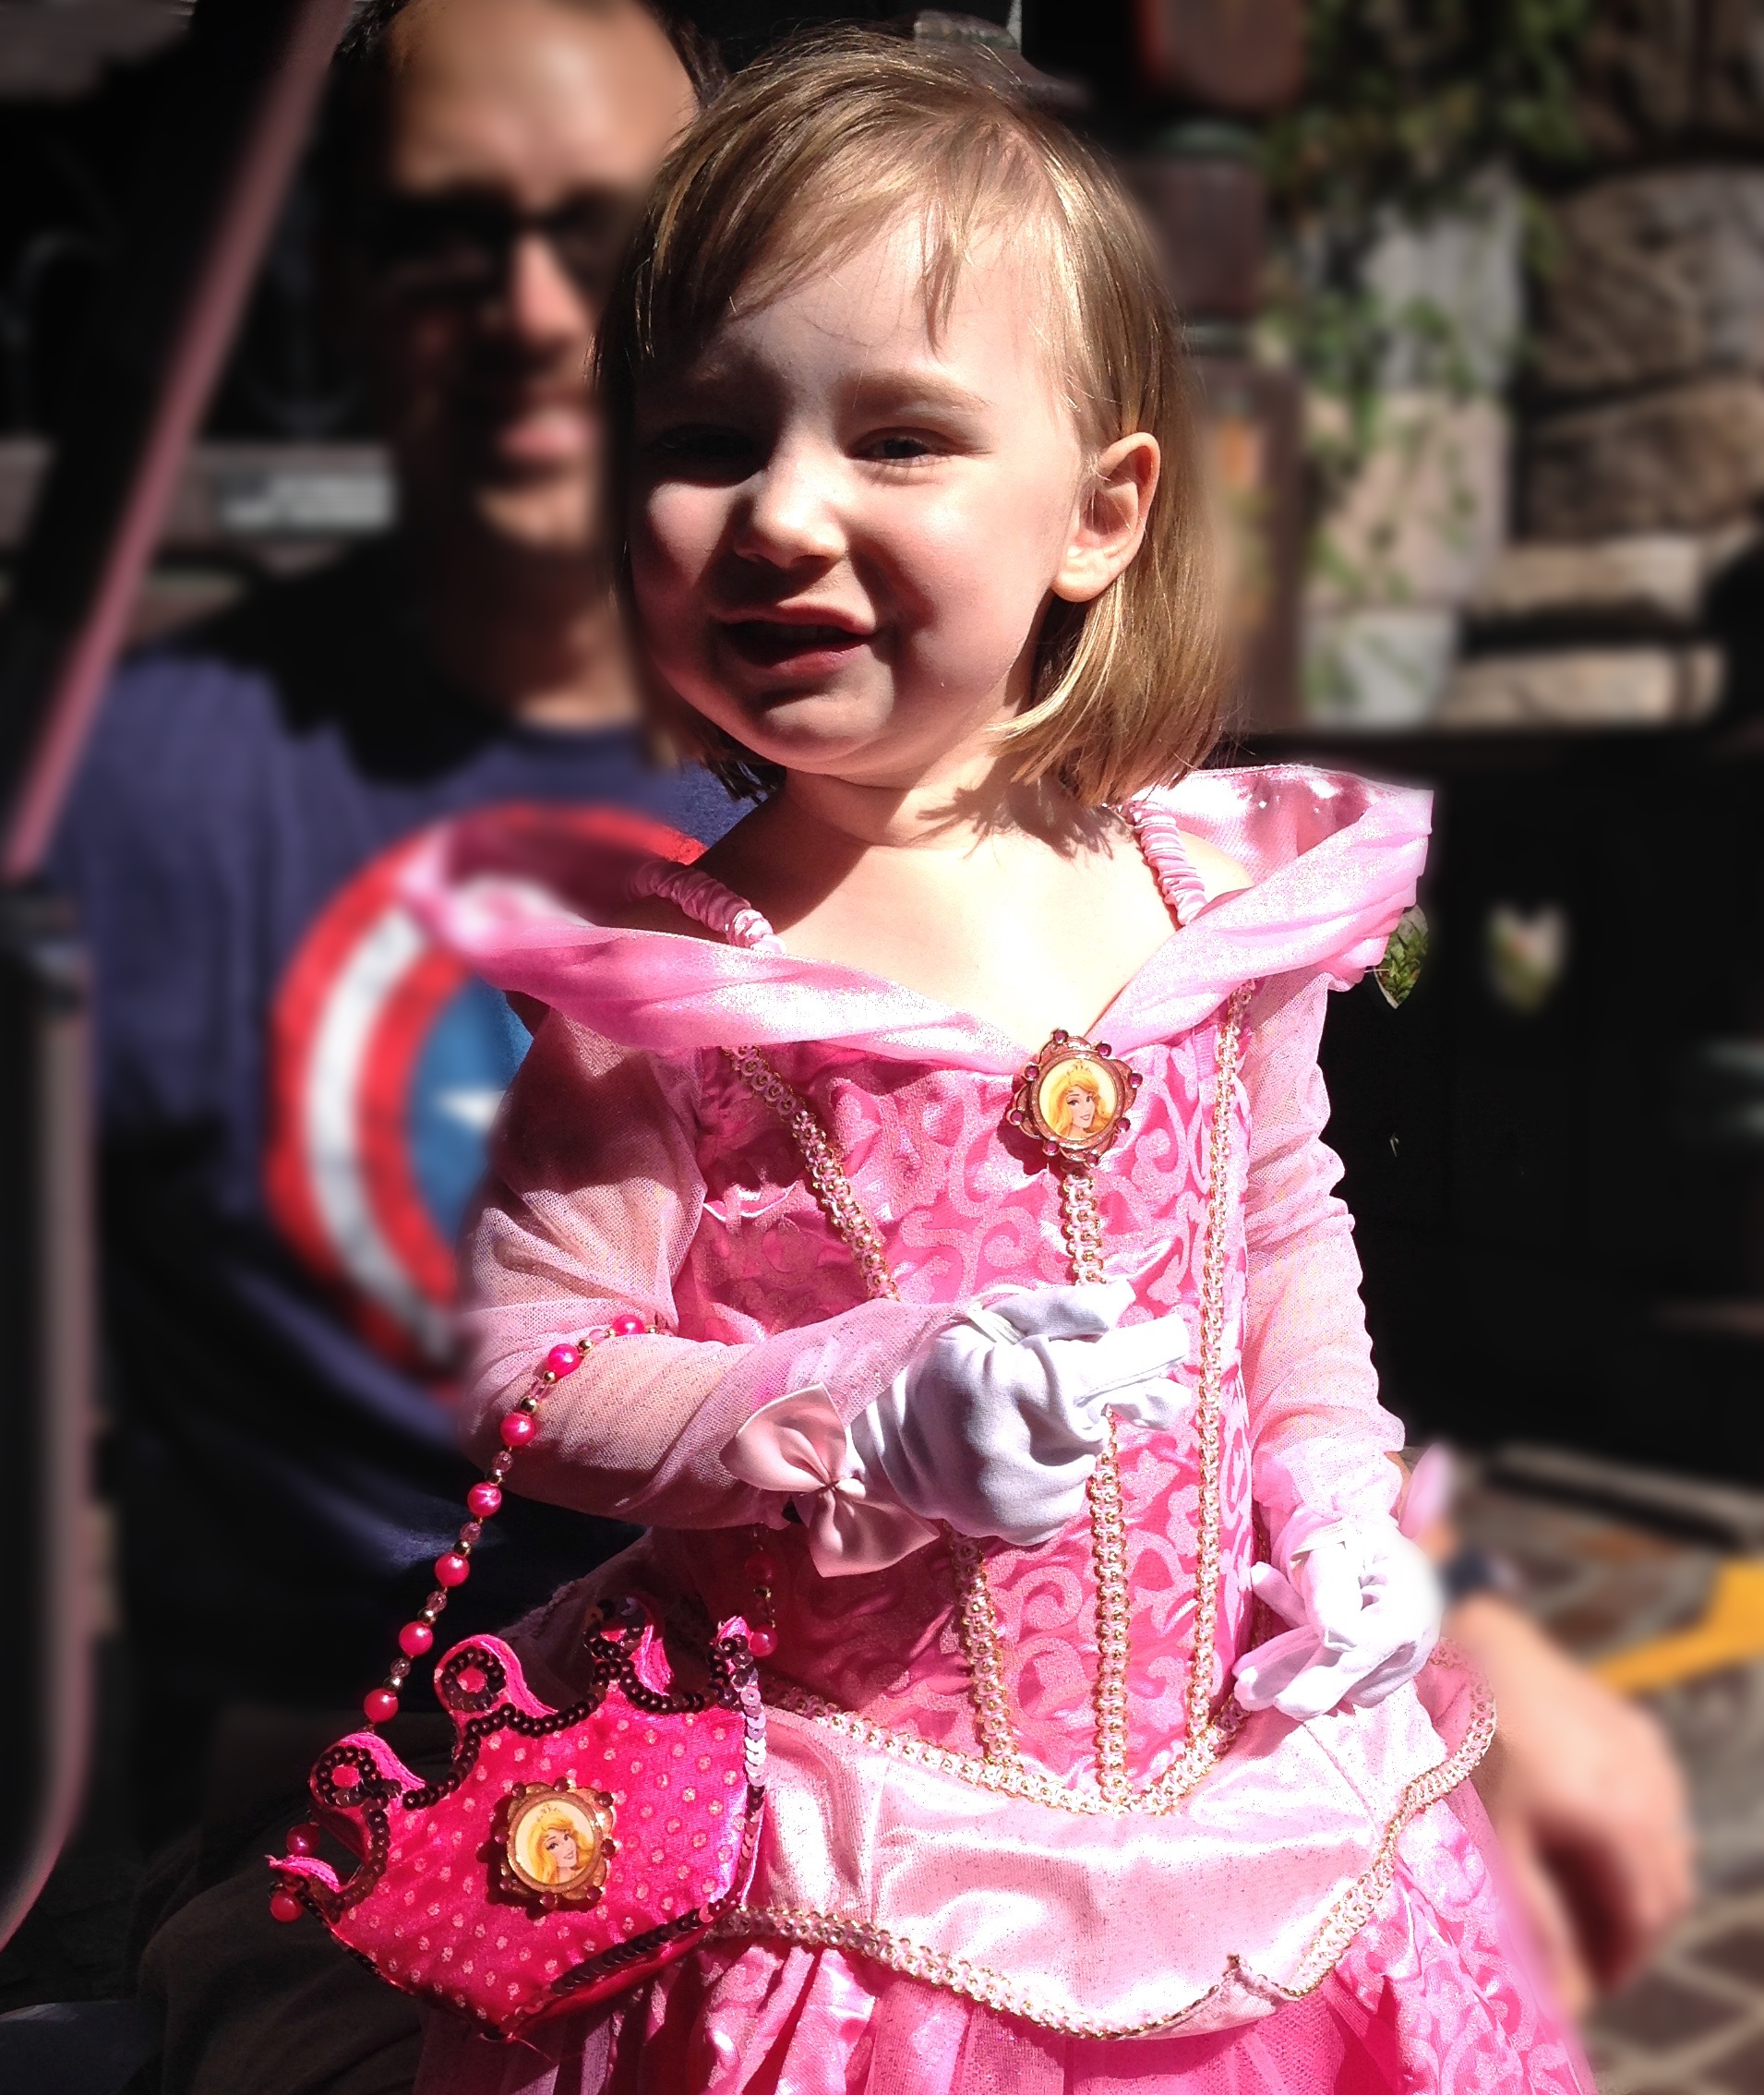 My daughter lit up with joy in her Aurora costume at Disneyland